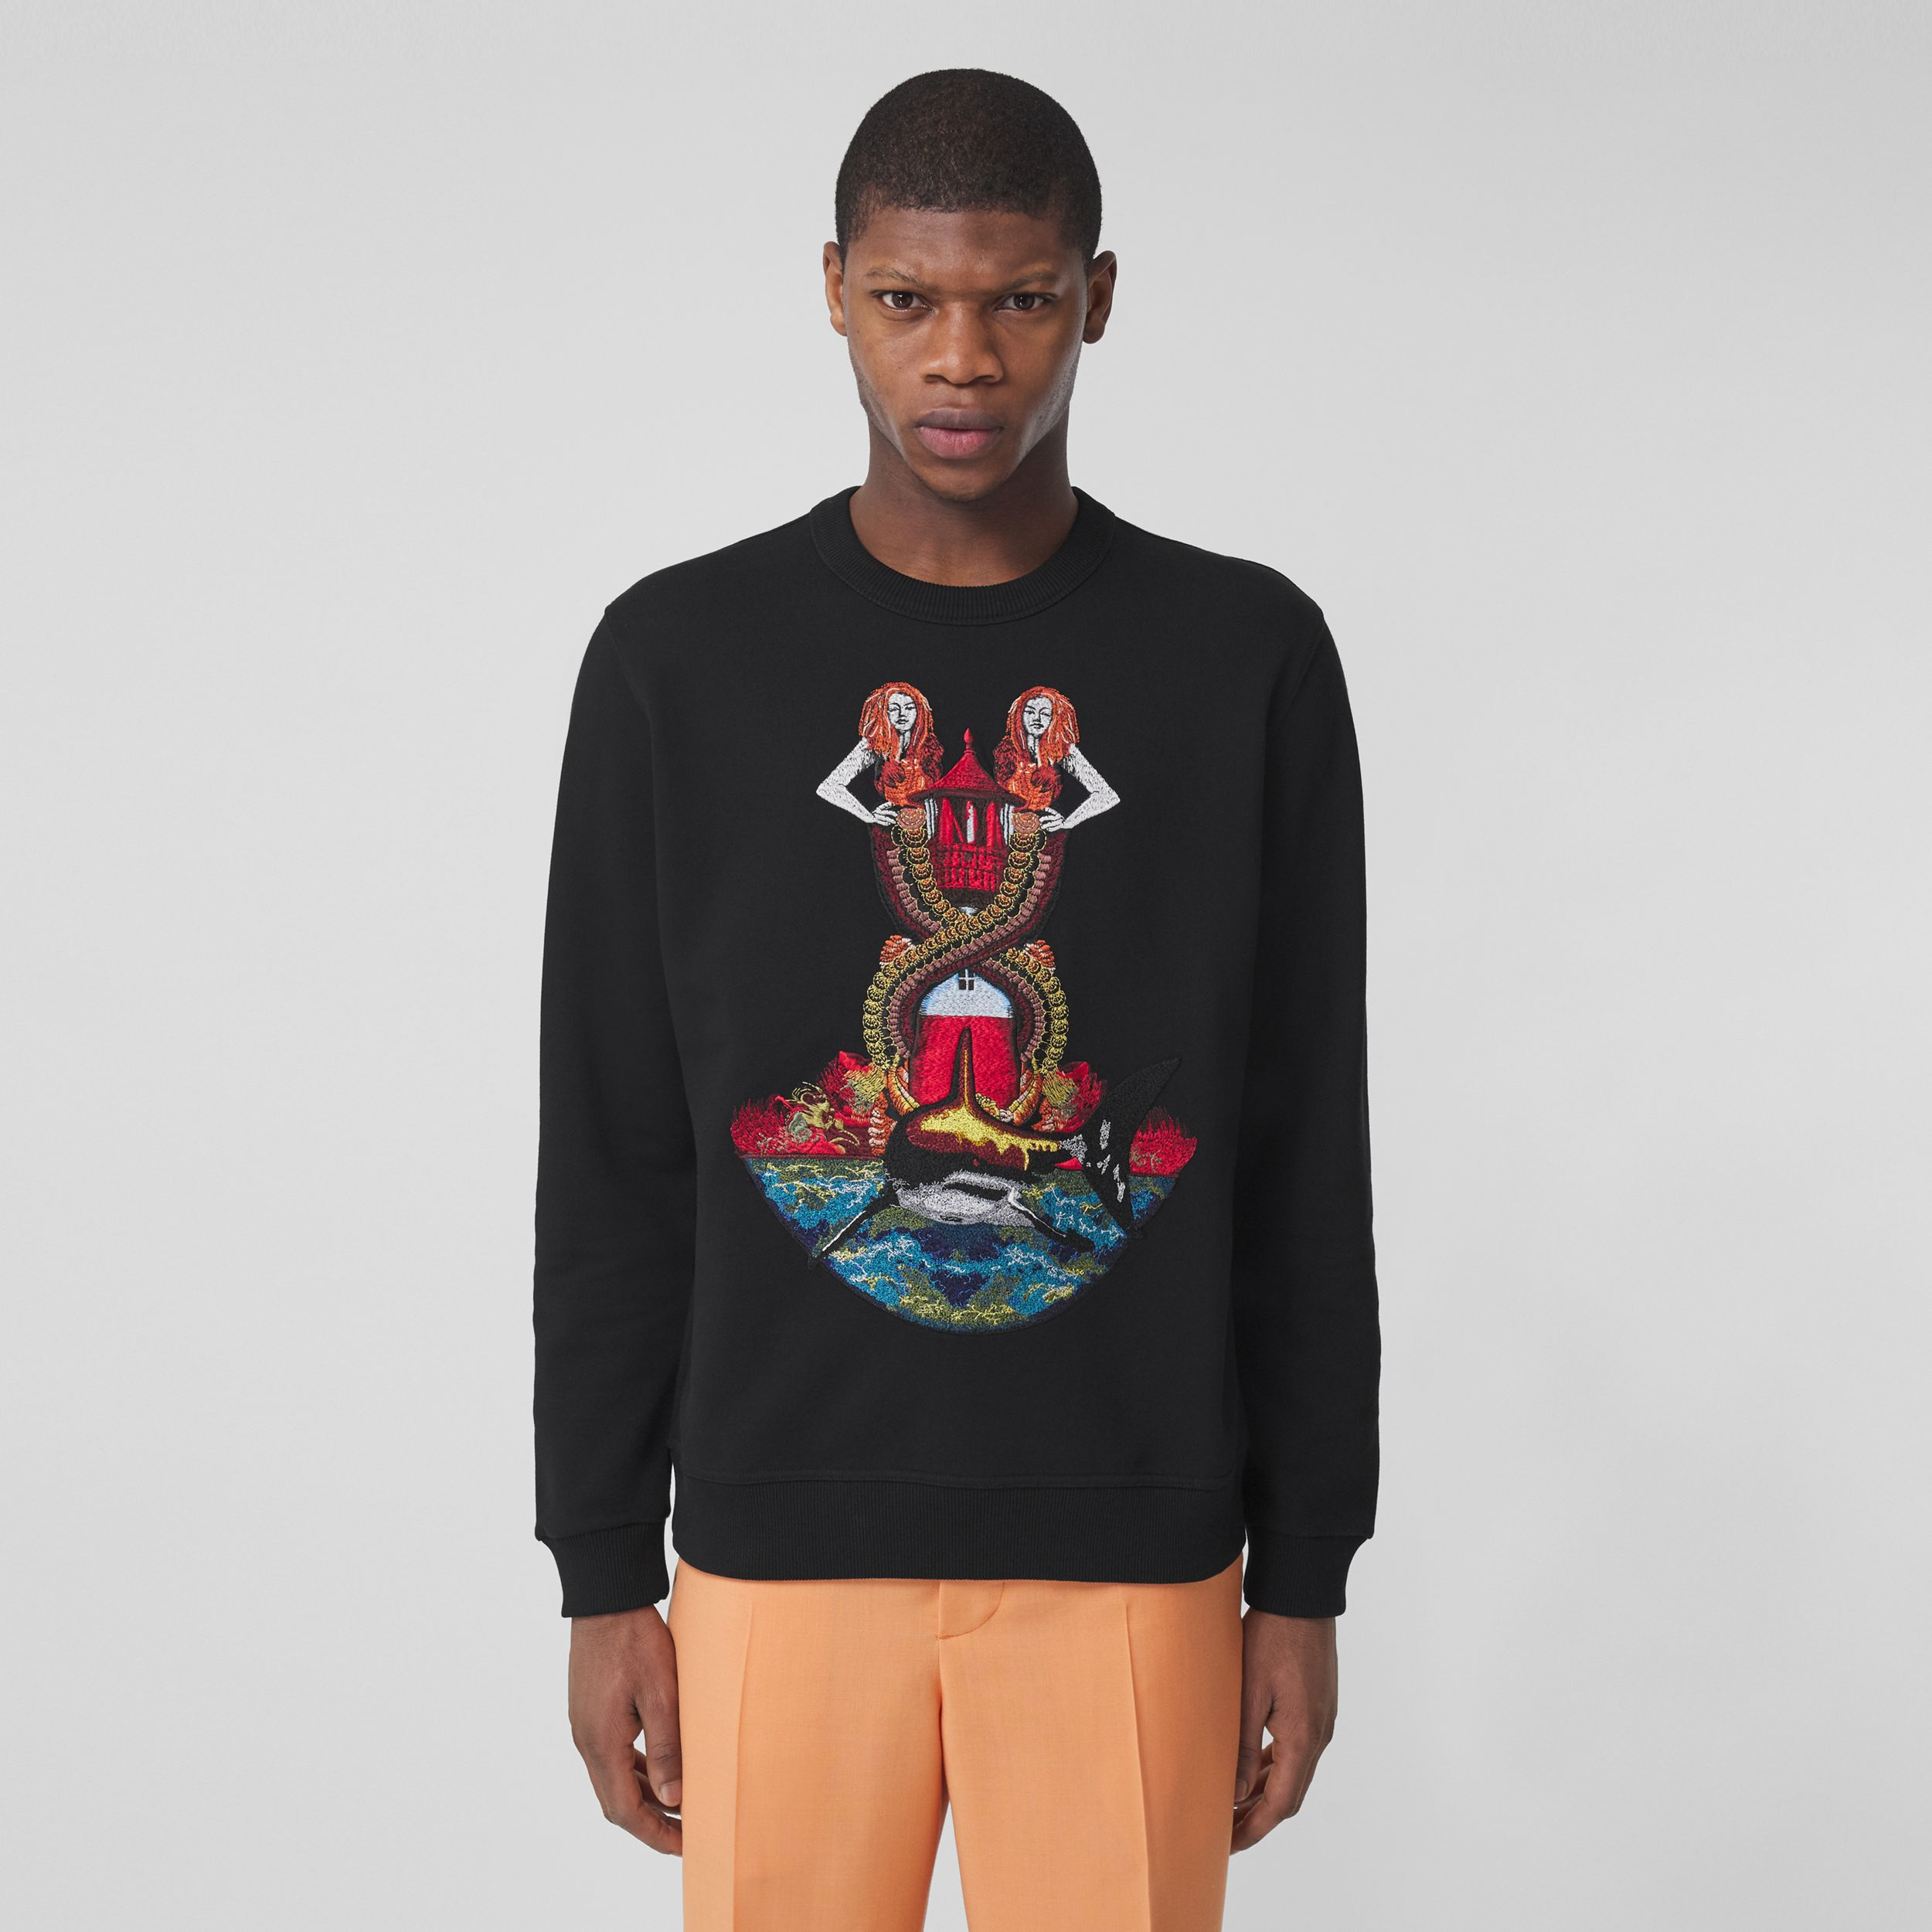 Mermaid Print Cotton Sweatshirt in Black - Men | Burberry - 1